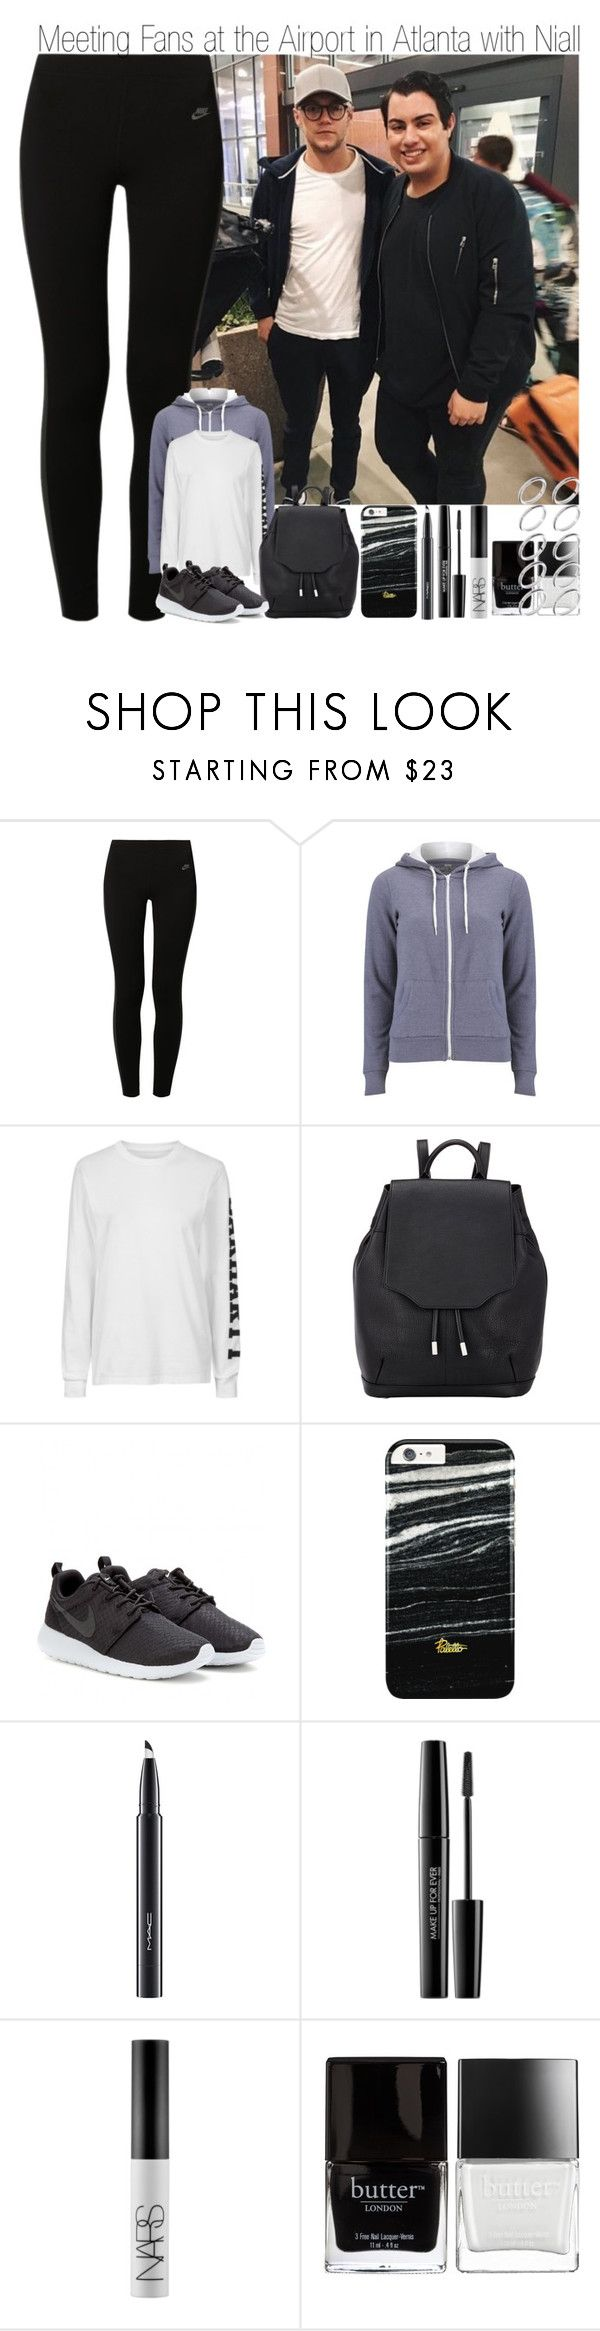 """""""Meeting Fans at the Airport in Atlanta with Niall"""" by elise-22 ❤ liked on Polyvore featuring NIKE, Brave Soul, Topshop, rag & bone, MAC Cosmetics, MAKE UP FOR EVER, NARS Cosmetics, Butter London and ASOS"""